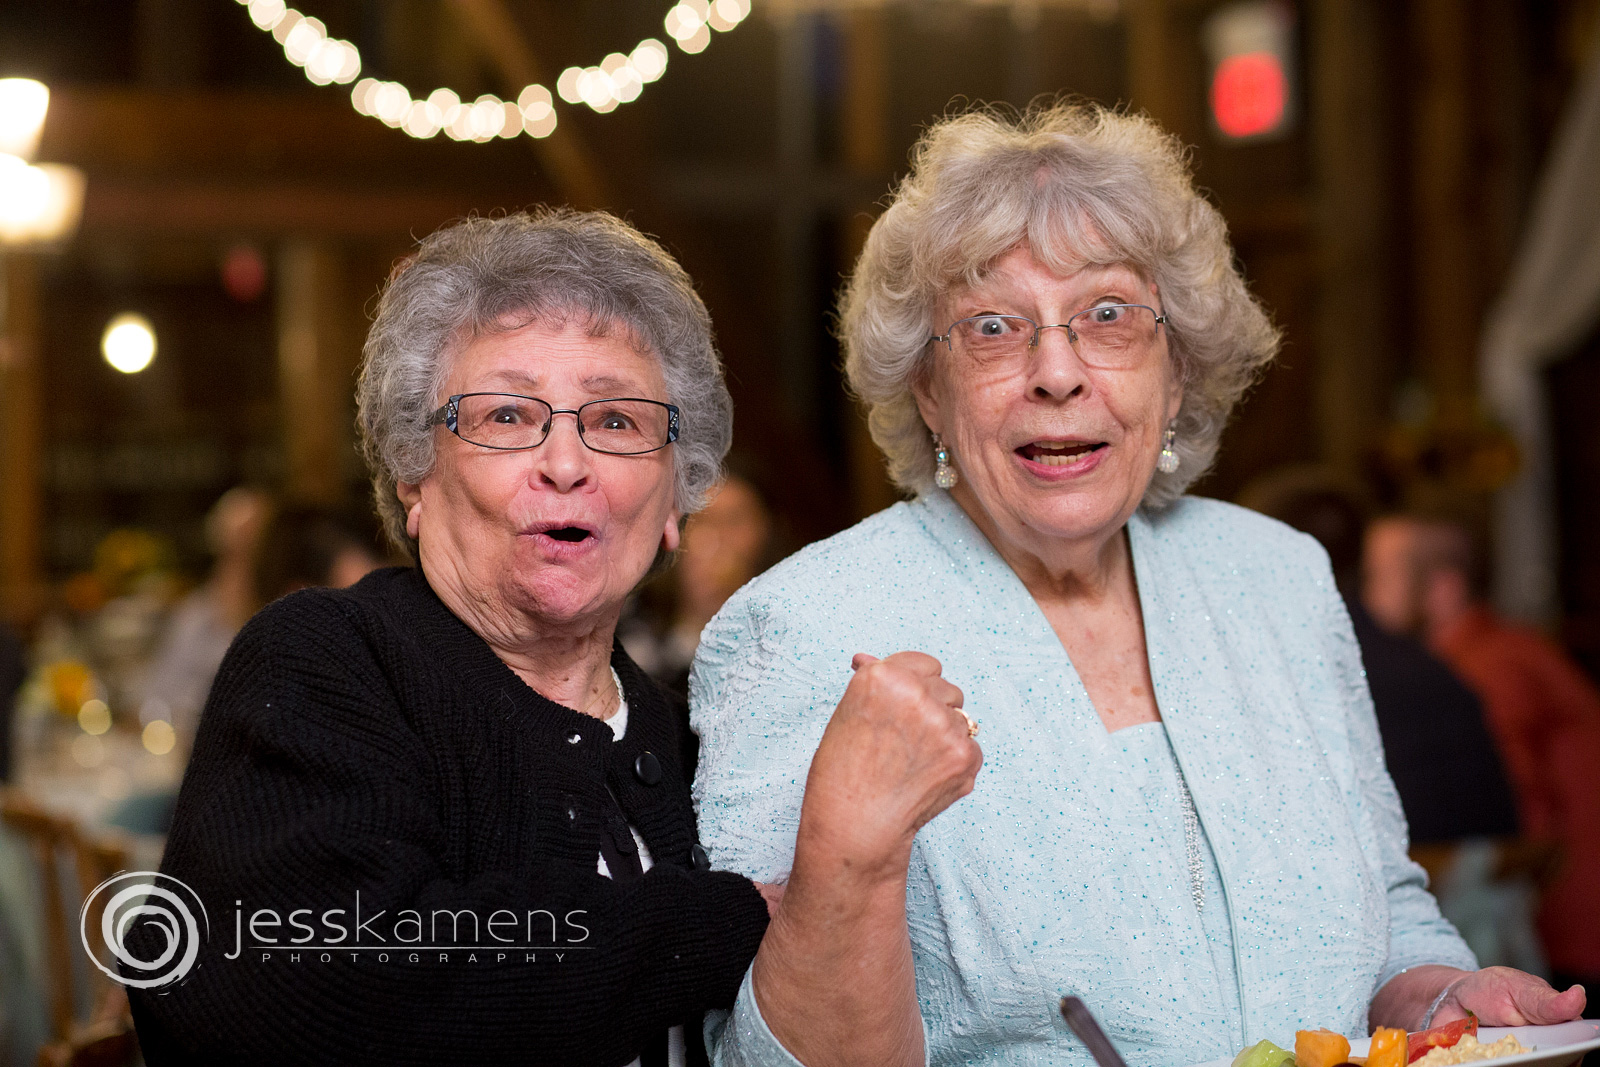 two older women laugh